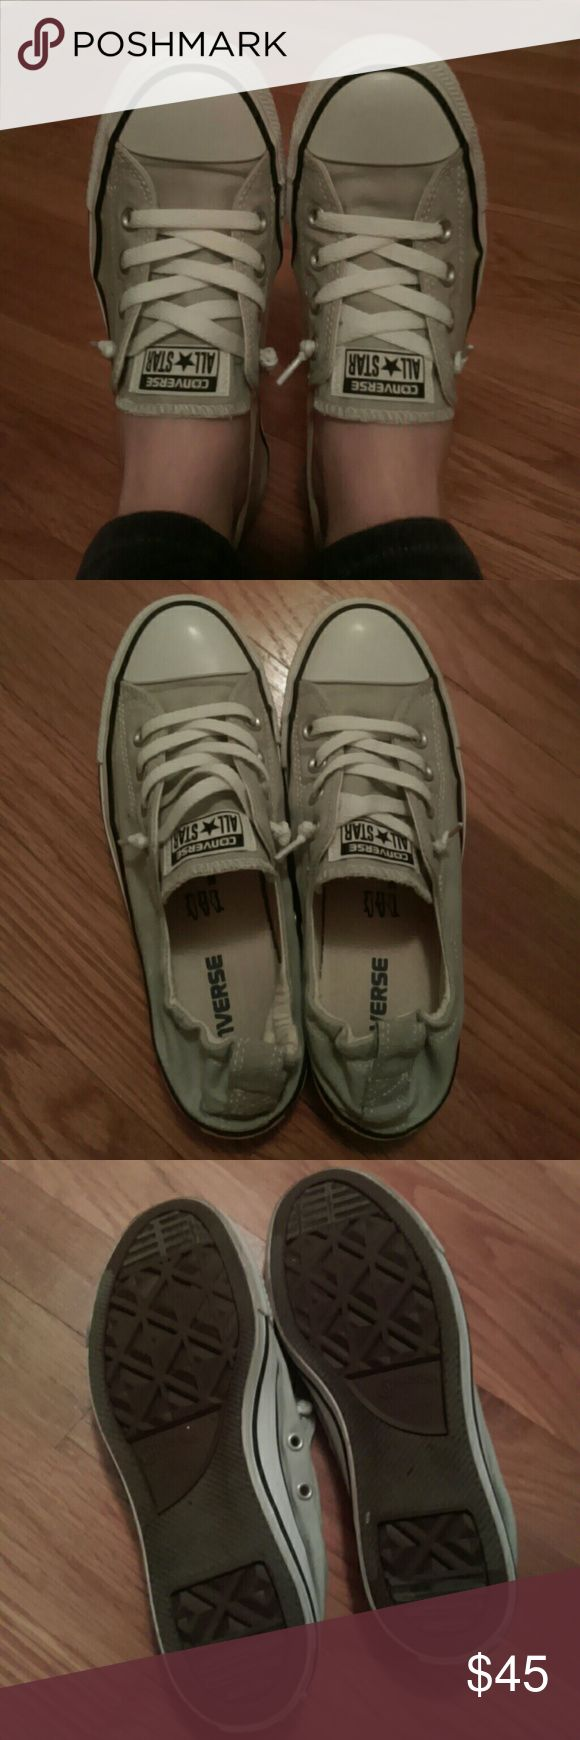 Gray Women's Converse Slip Ons Having to re-Posh. Oh how I wish these fit! They look like they have NEVER been worn. In great condition but just a teeny bit small for me. Converse Shoes Sneakers